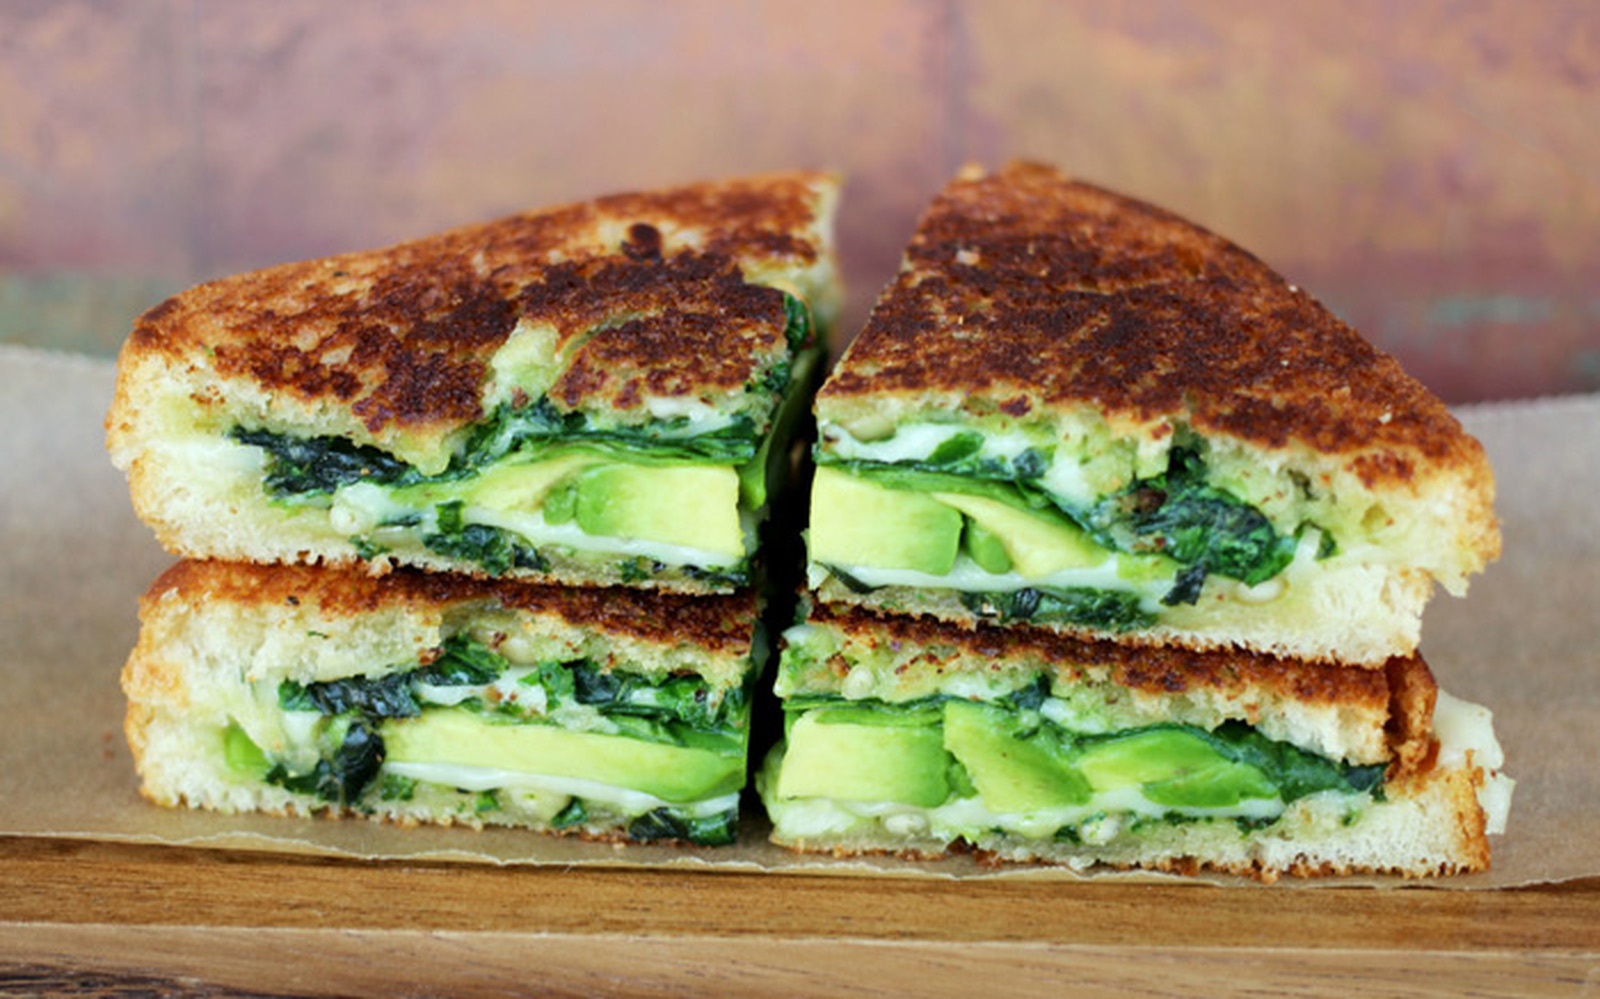 Green Goddess Griller vegan grilled cheese